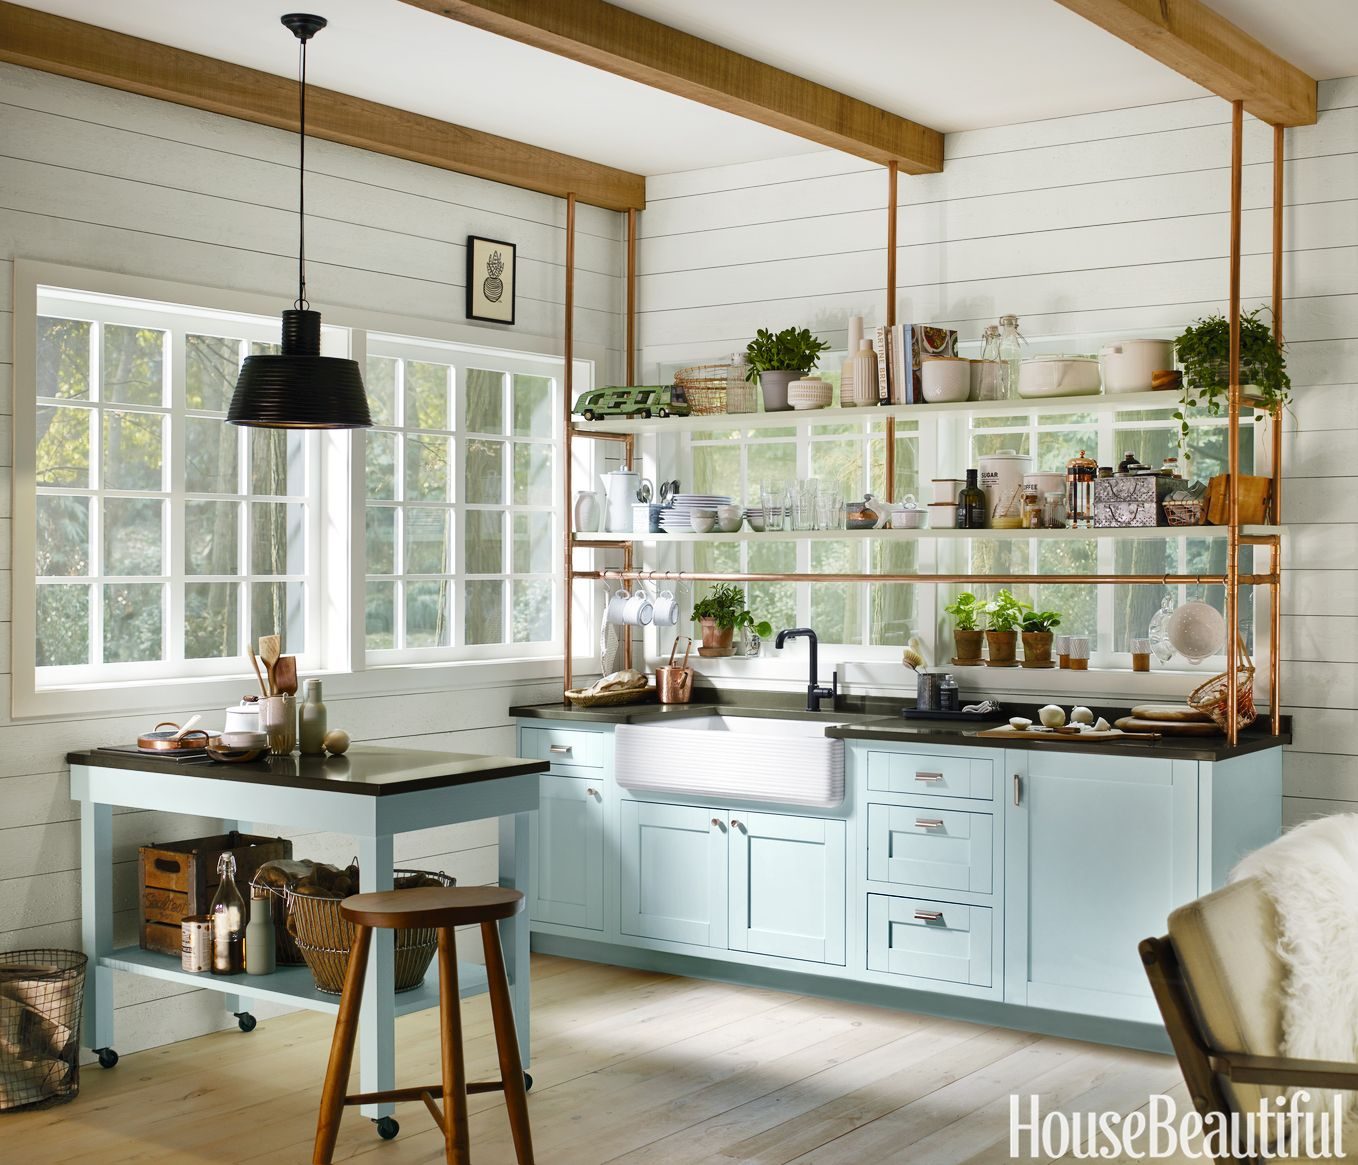 Kitchen Design Layout Graph Paper 24 Unique Kitchen Storage Ideas Easy Storage Solutions For Kitchens